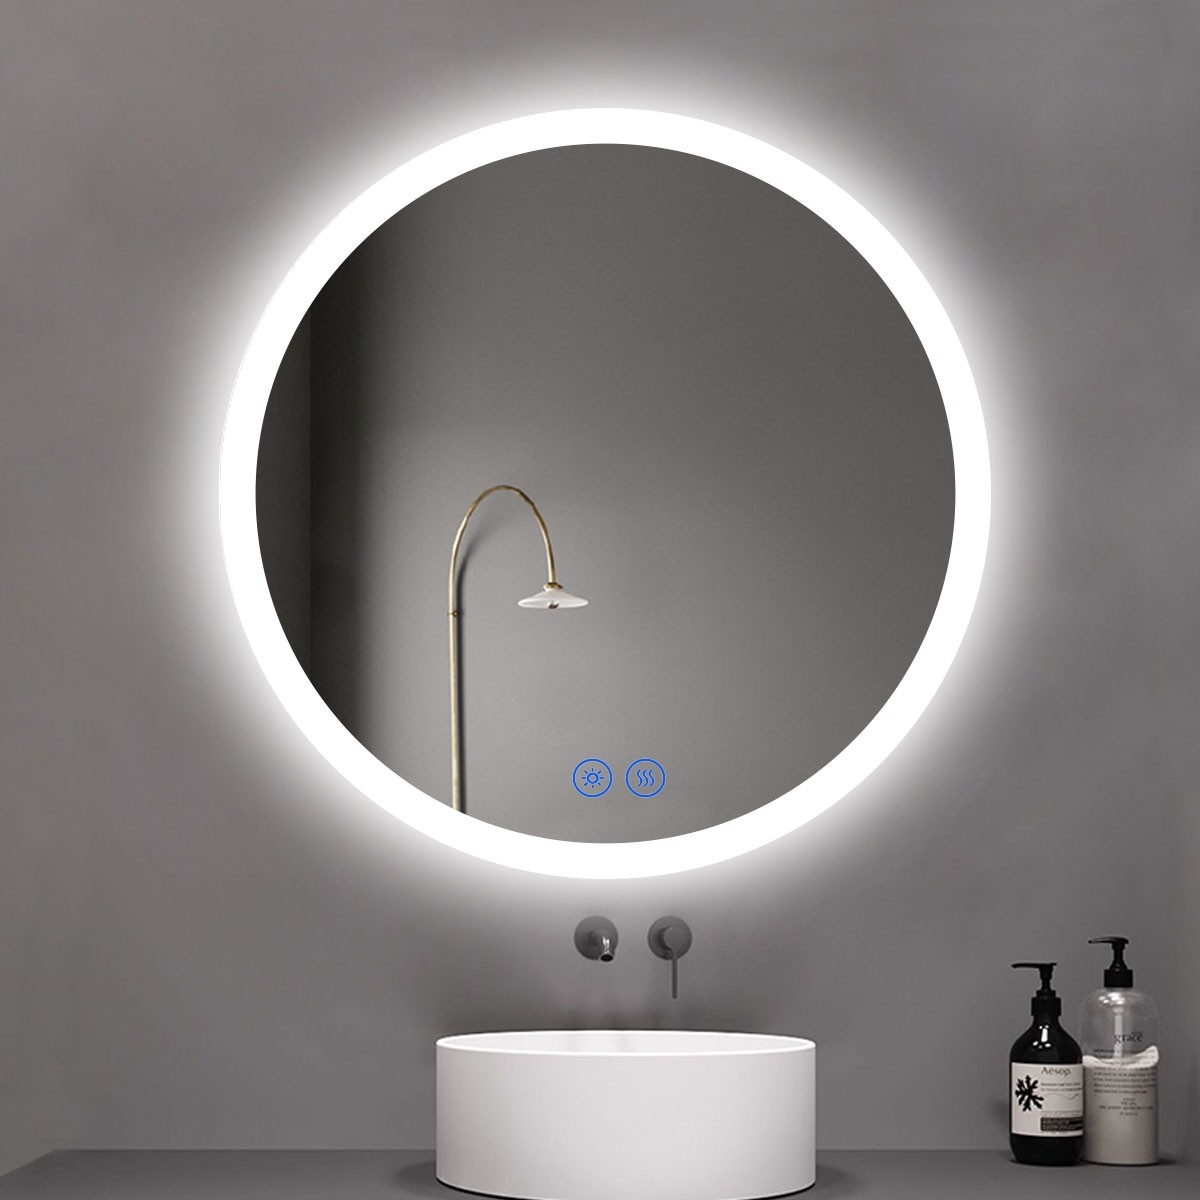 DECORAPORT 40 x 40 Inch LED Bathroom Mirror/Dress Mirror with Touch Button, Anti Fog, Dimmable, Vertical Mount (YT05-4040)